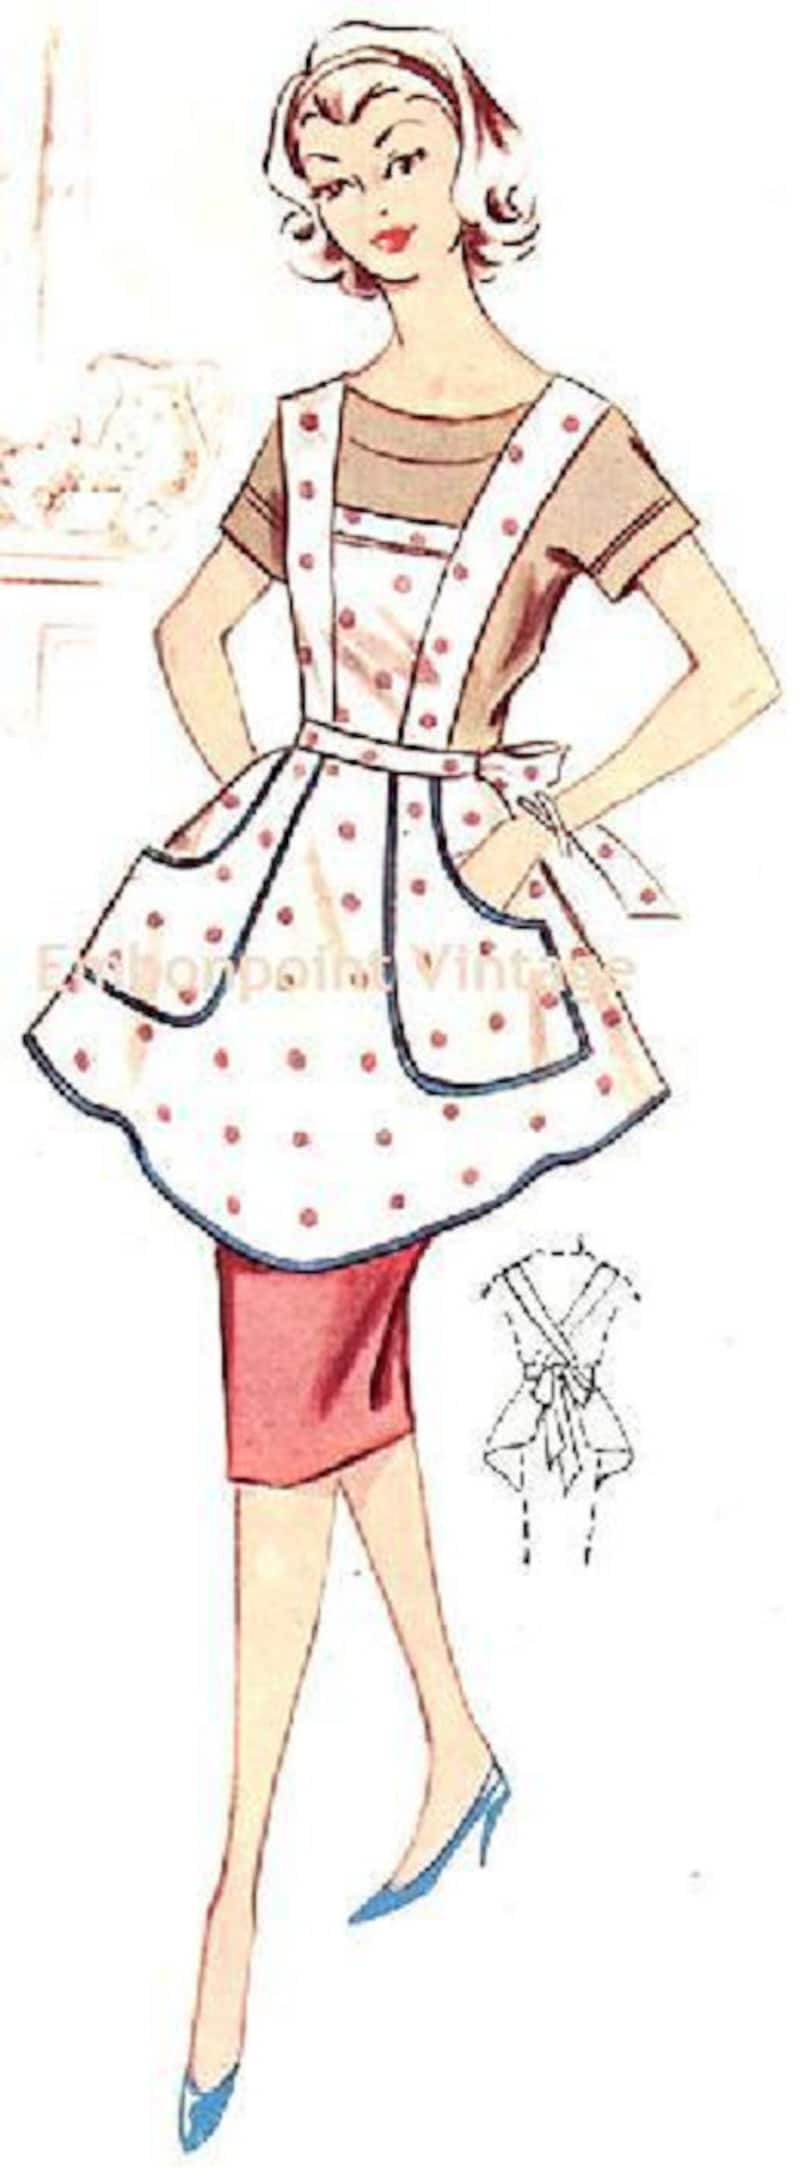 Vintage Aprons, Retro Aprons, Old Fashioned Aprons & Patterns Plus Size (or any size) Vintage 1950s Apron Pattern - PDF - Pattern No 111 Jill 50s Sewing Patterns Instant Download Rockabilly $8.35 AT vintagedancer.com